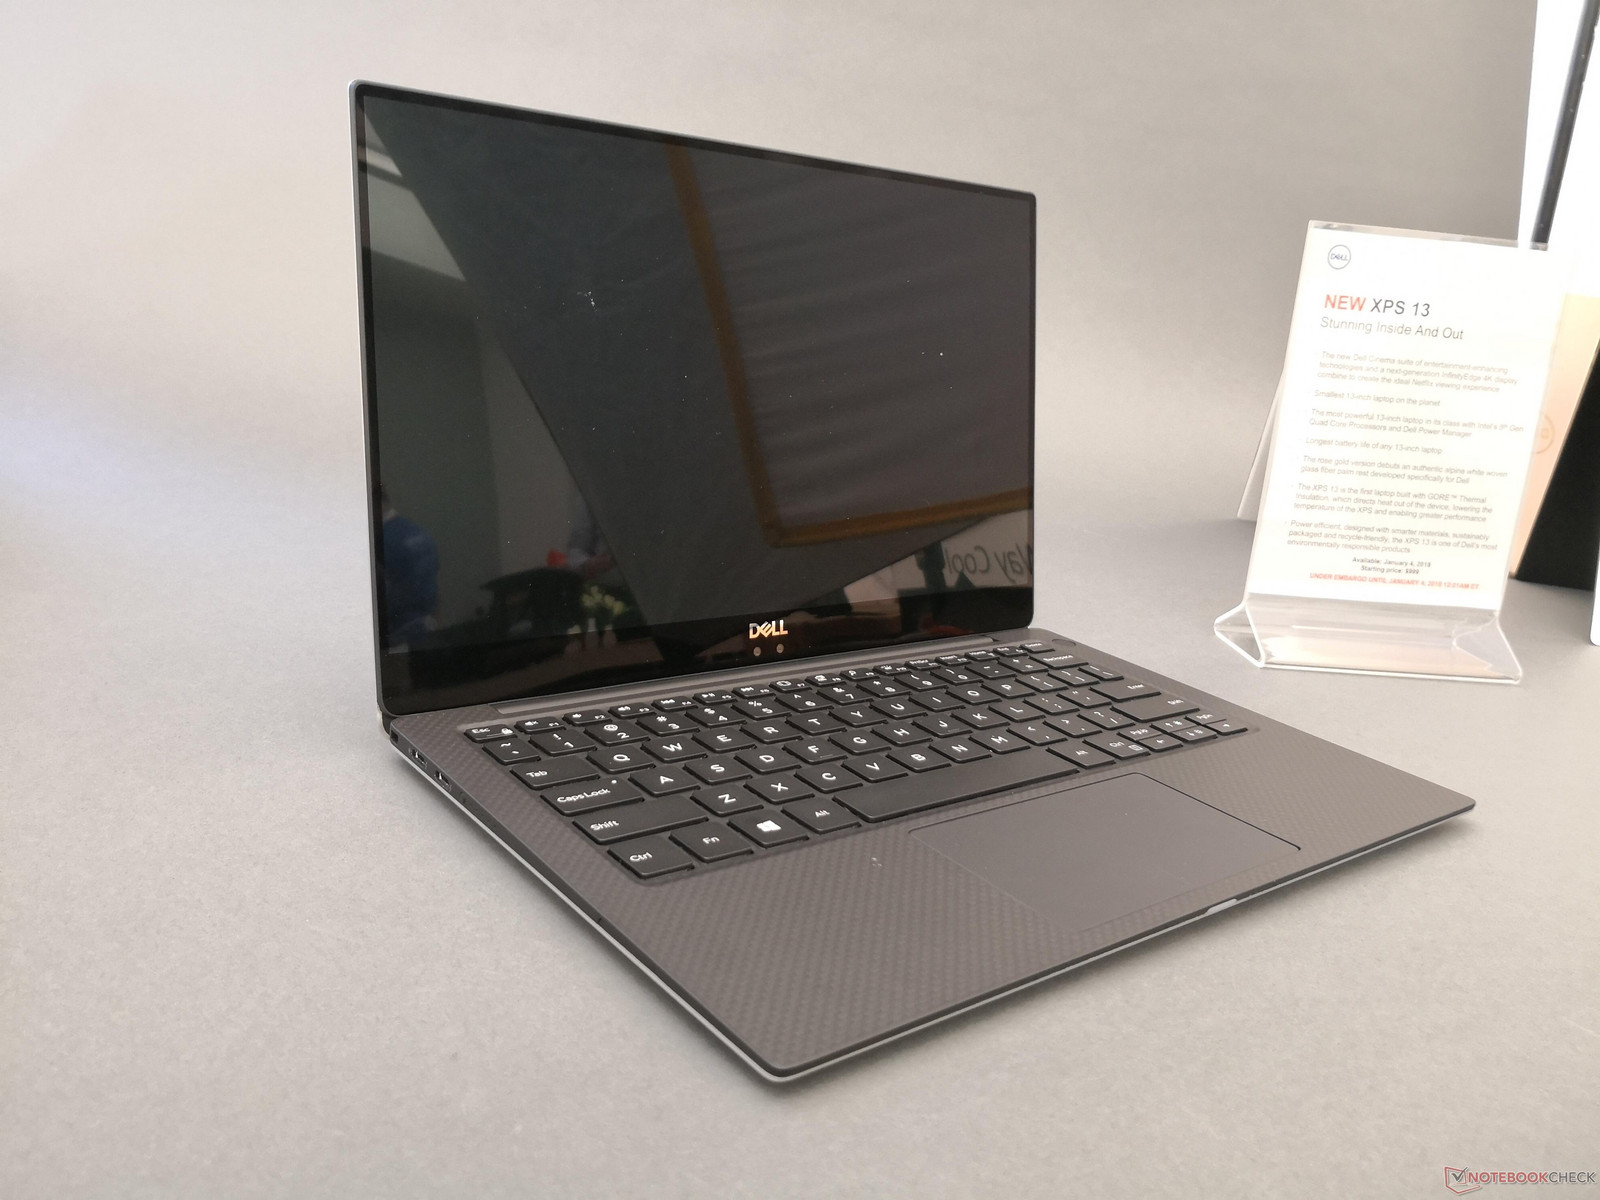 Dell XPS 13 9370 600 03